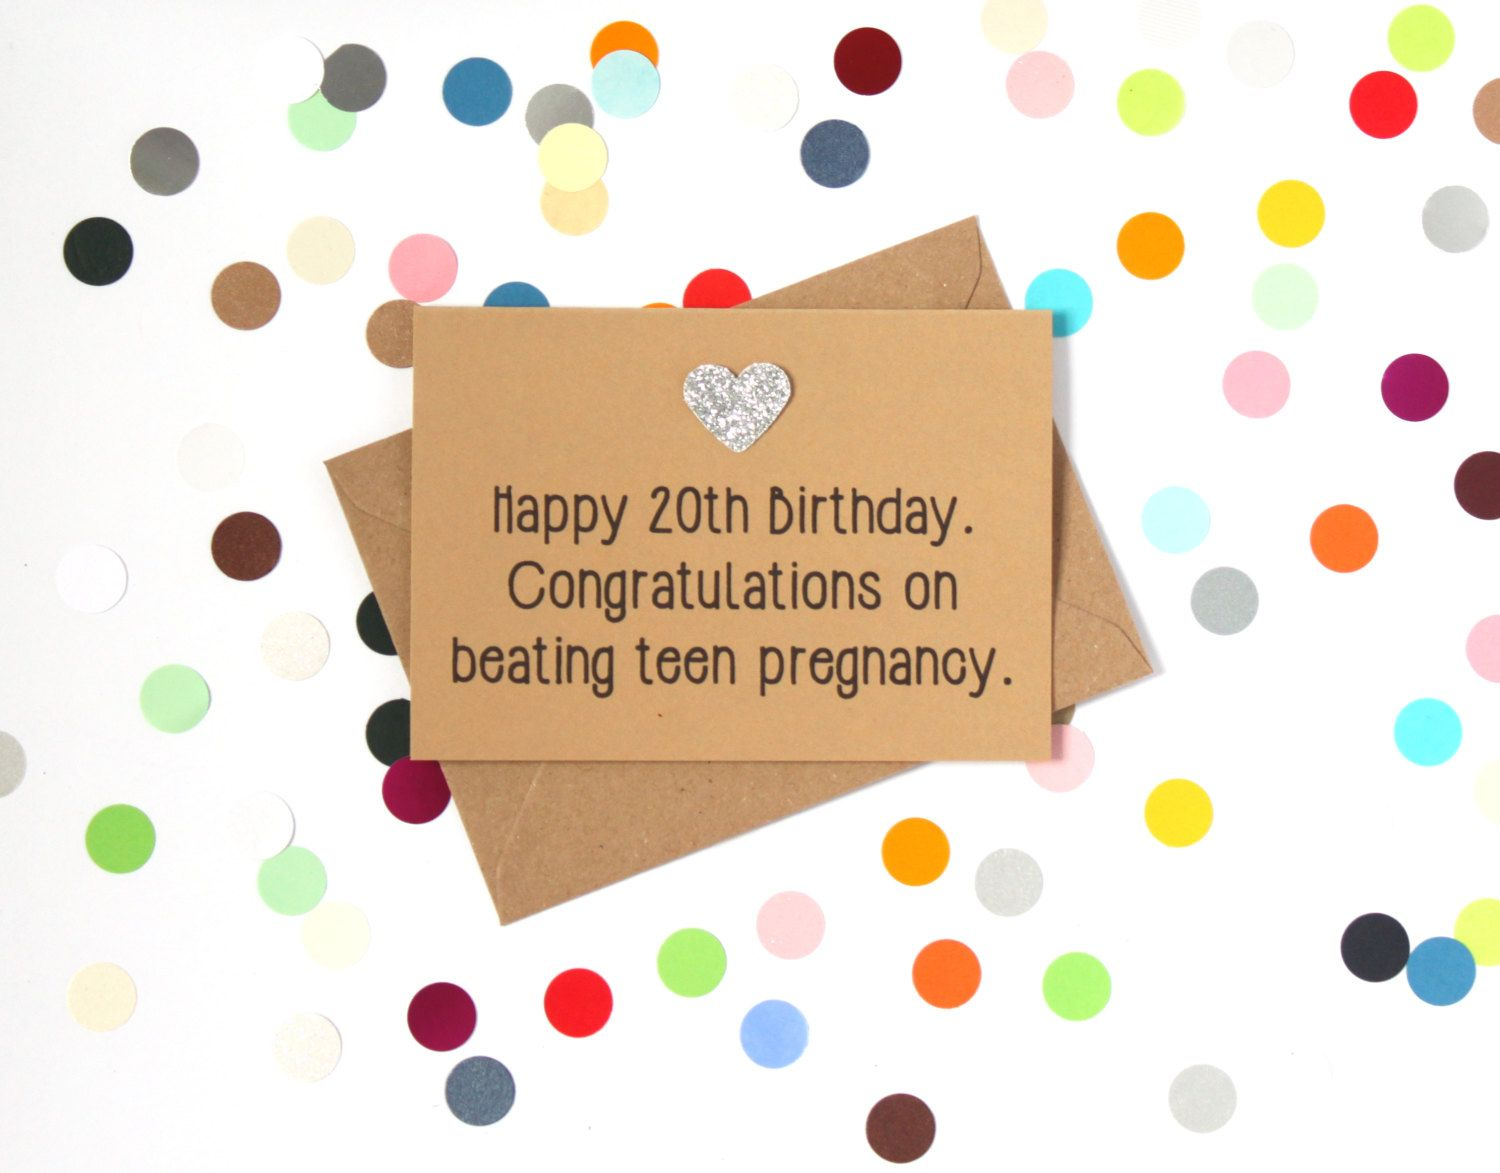 Funny 20th Birthday Card Congratulations On Beating Teen Pregnancy Handmade